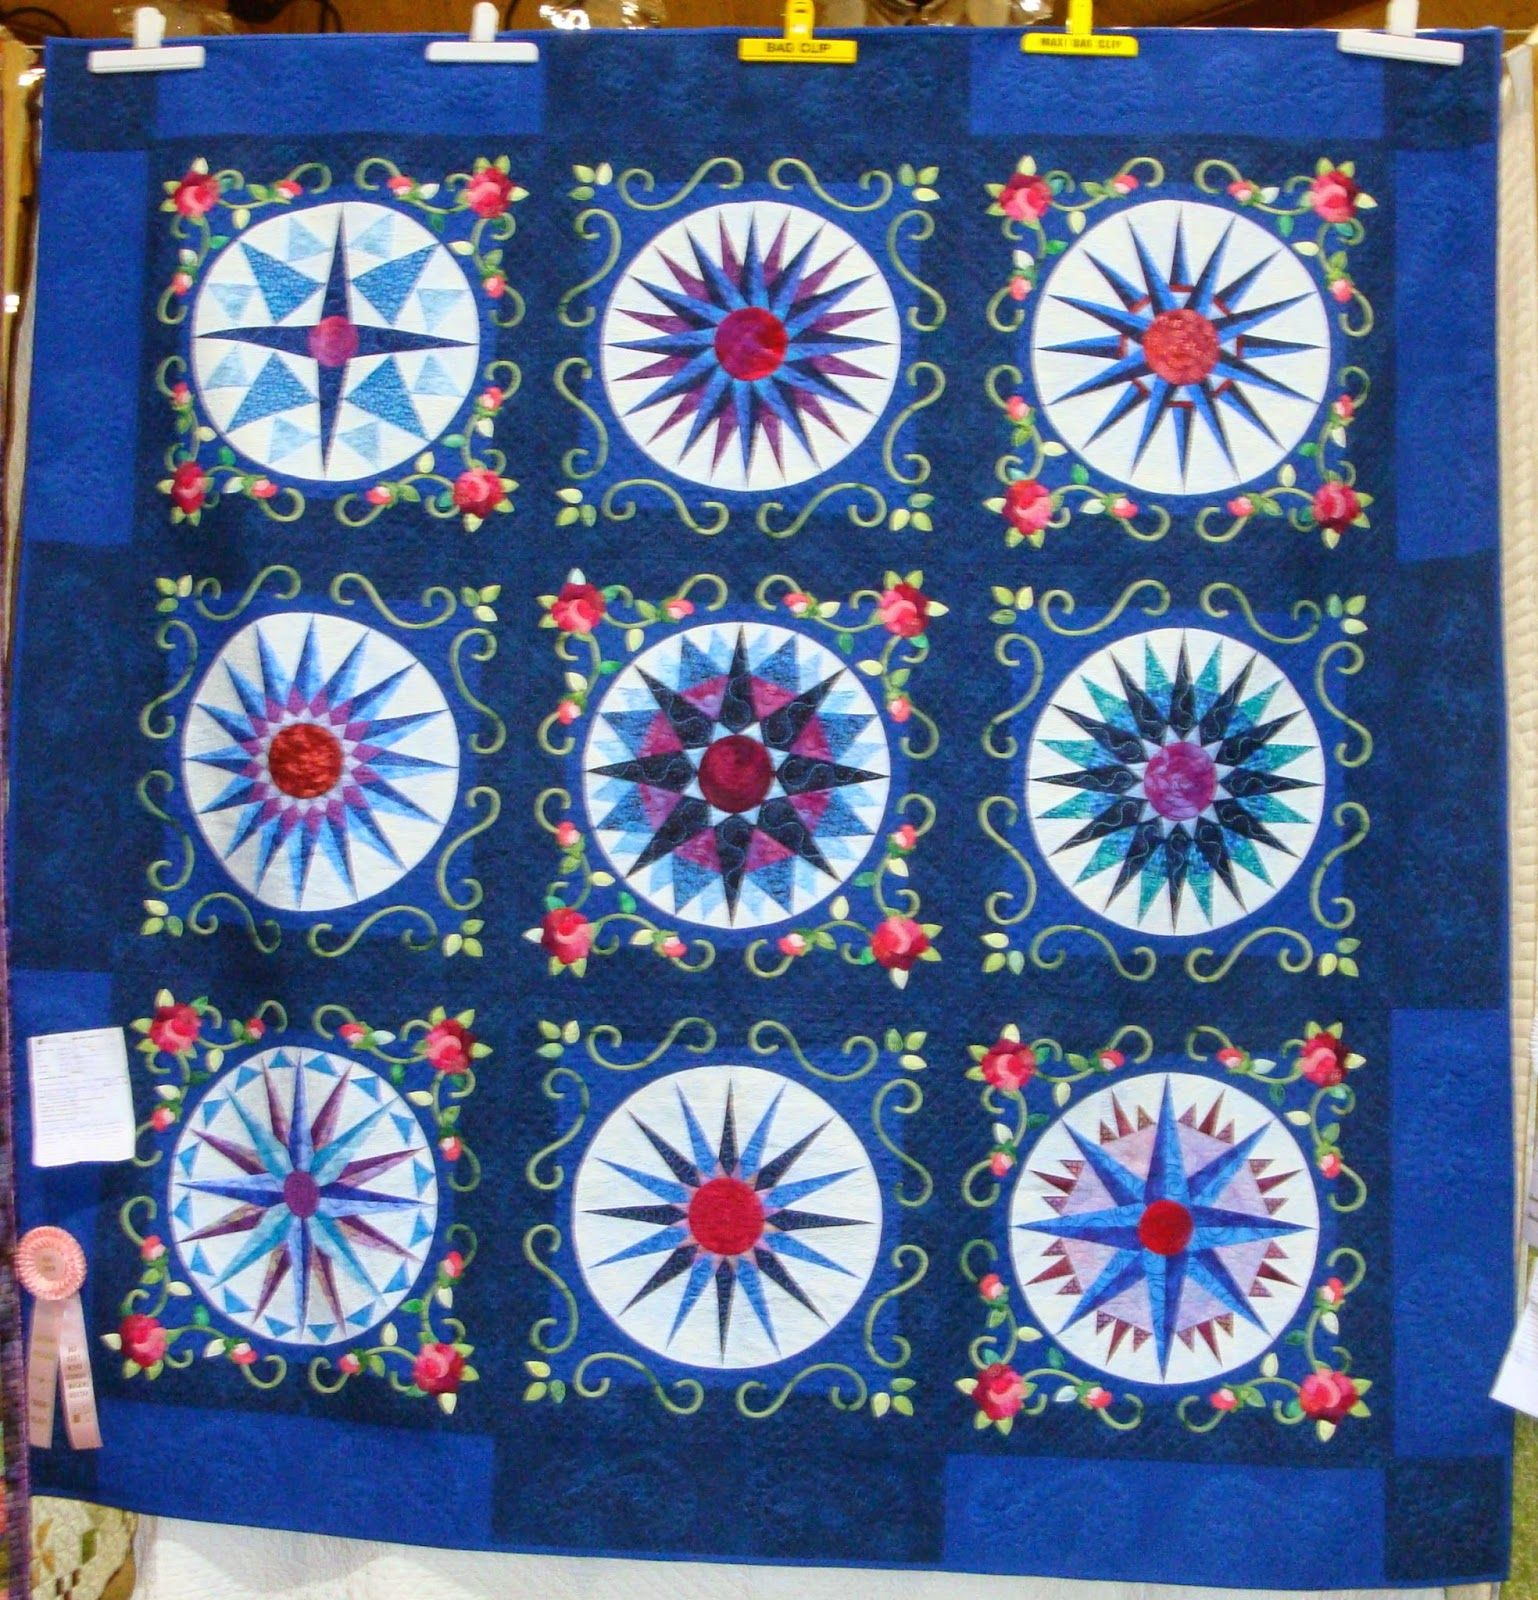 FABRIC THERAPY: Sauder Village Quilt Show: Part Three ... : sauder village quilt show - Adamdwight.com